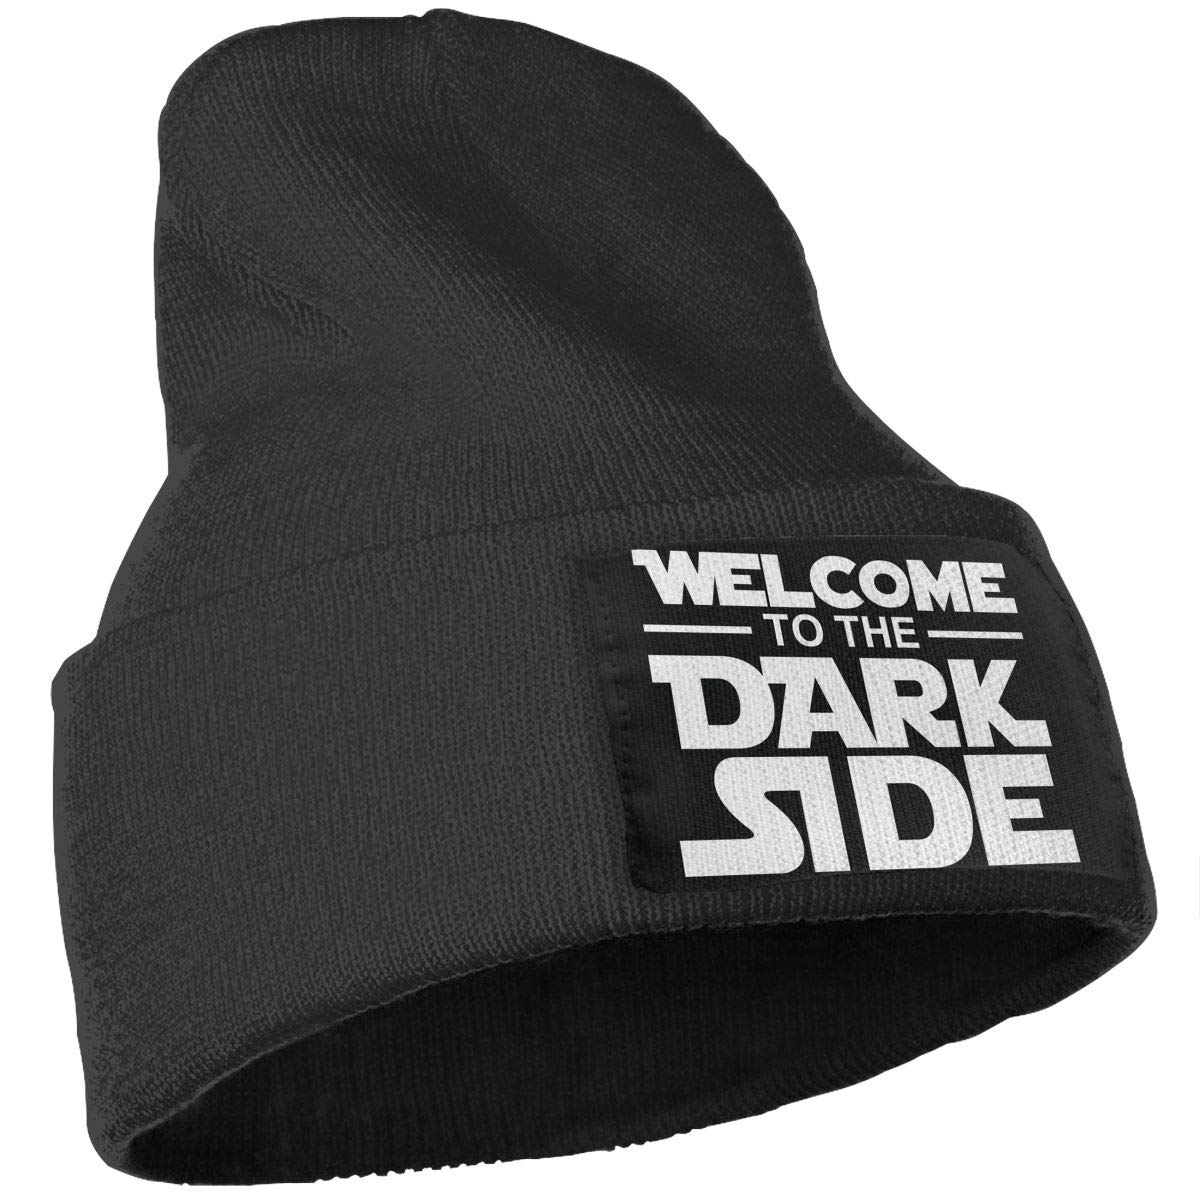 WHOO93@Y Mens and Womens 100/% Acrylic Knitting Hat Cap Welcome to The Dark Side Fashion Beanie Hat